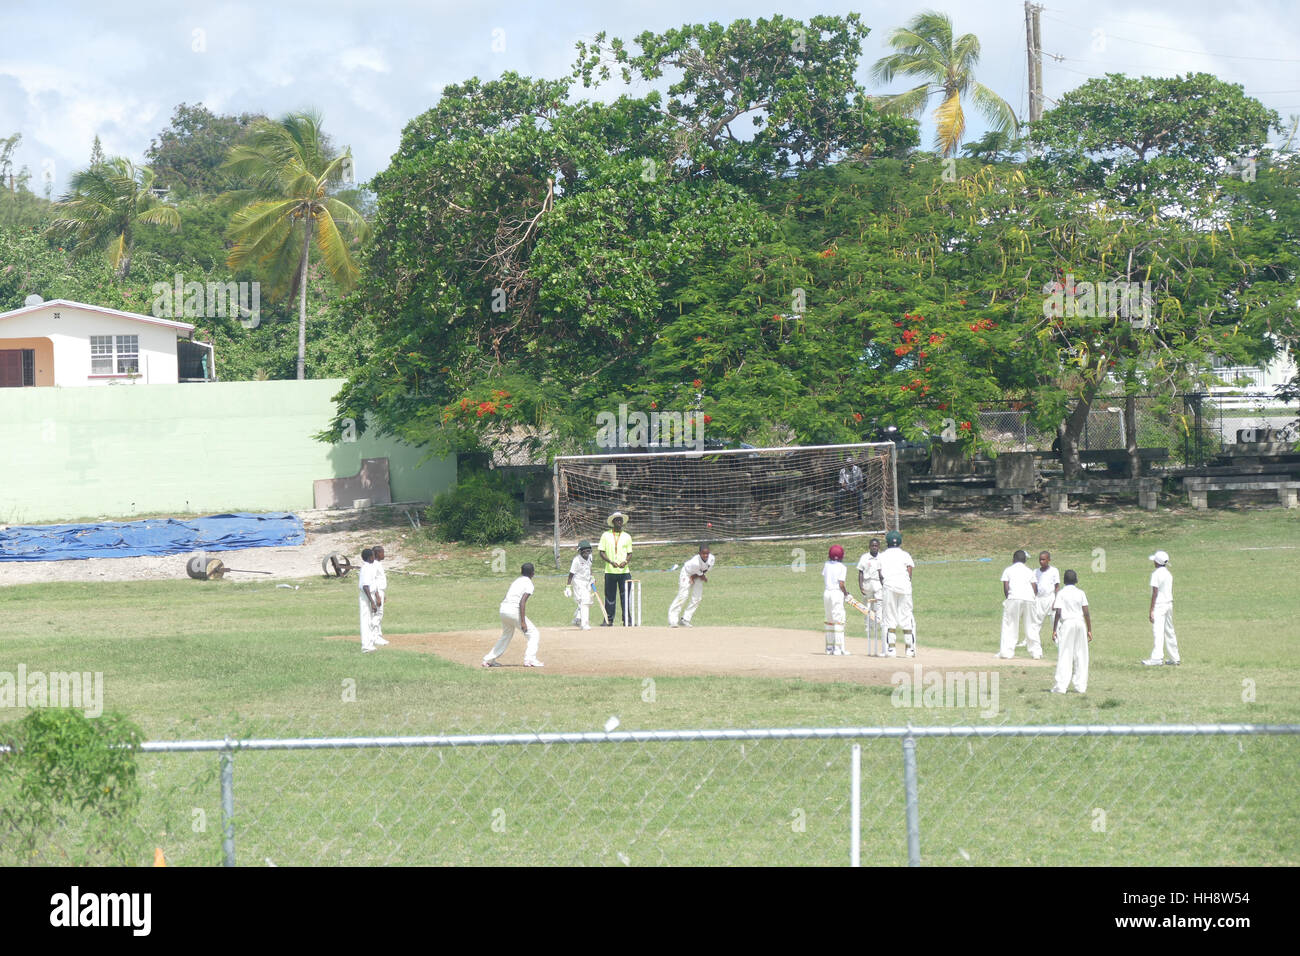 cricket match in the caribbean - Stock Image